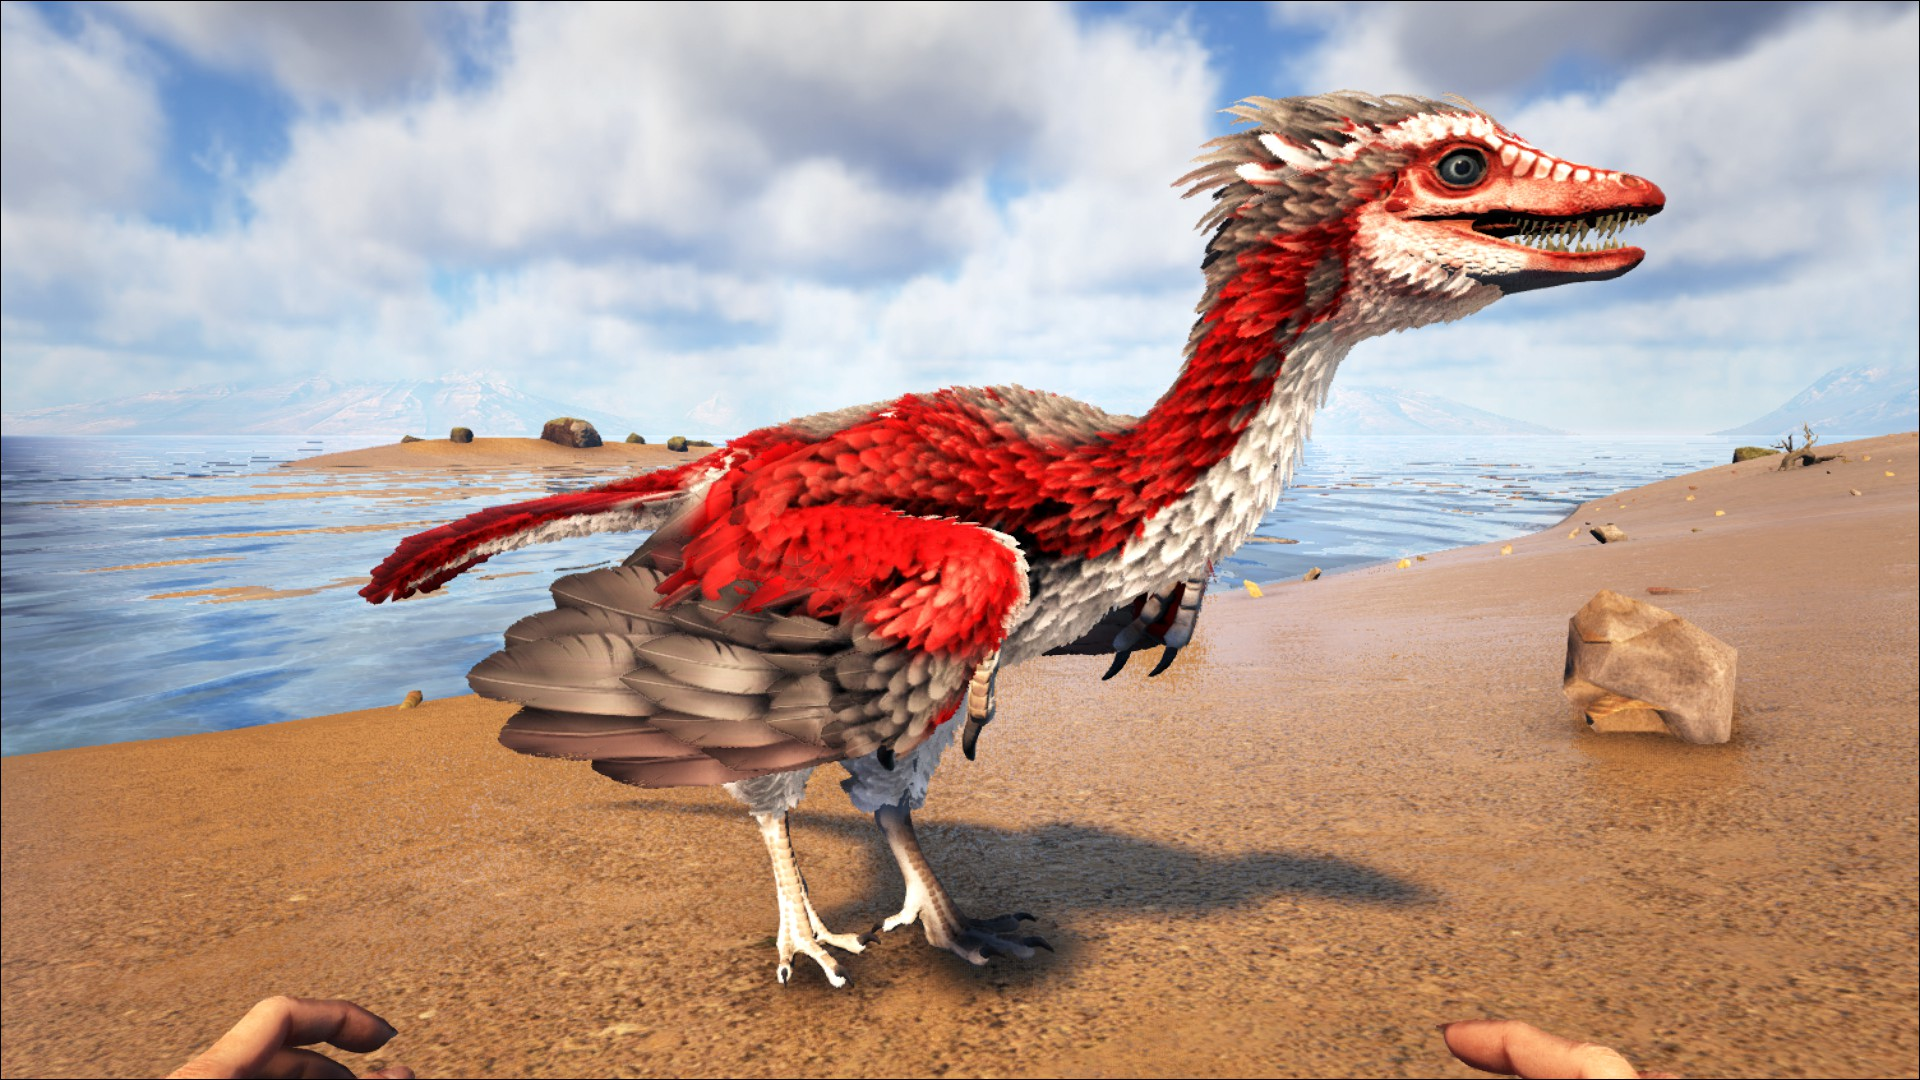 Archaeopteryx Official Ark Survival Evolved Wiki